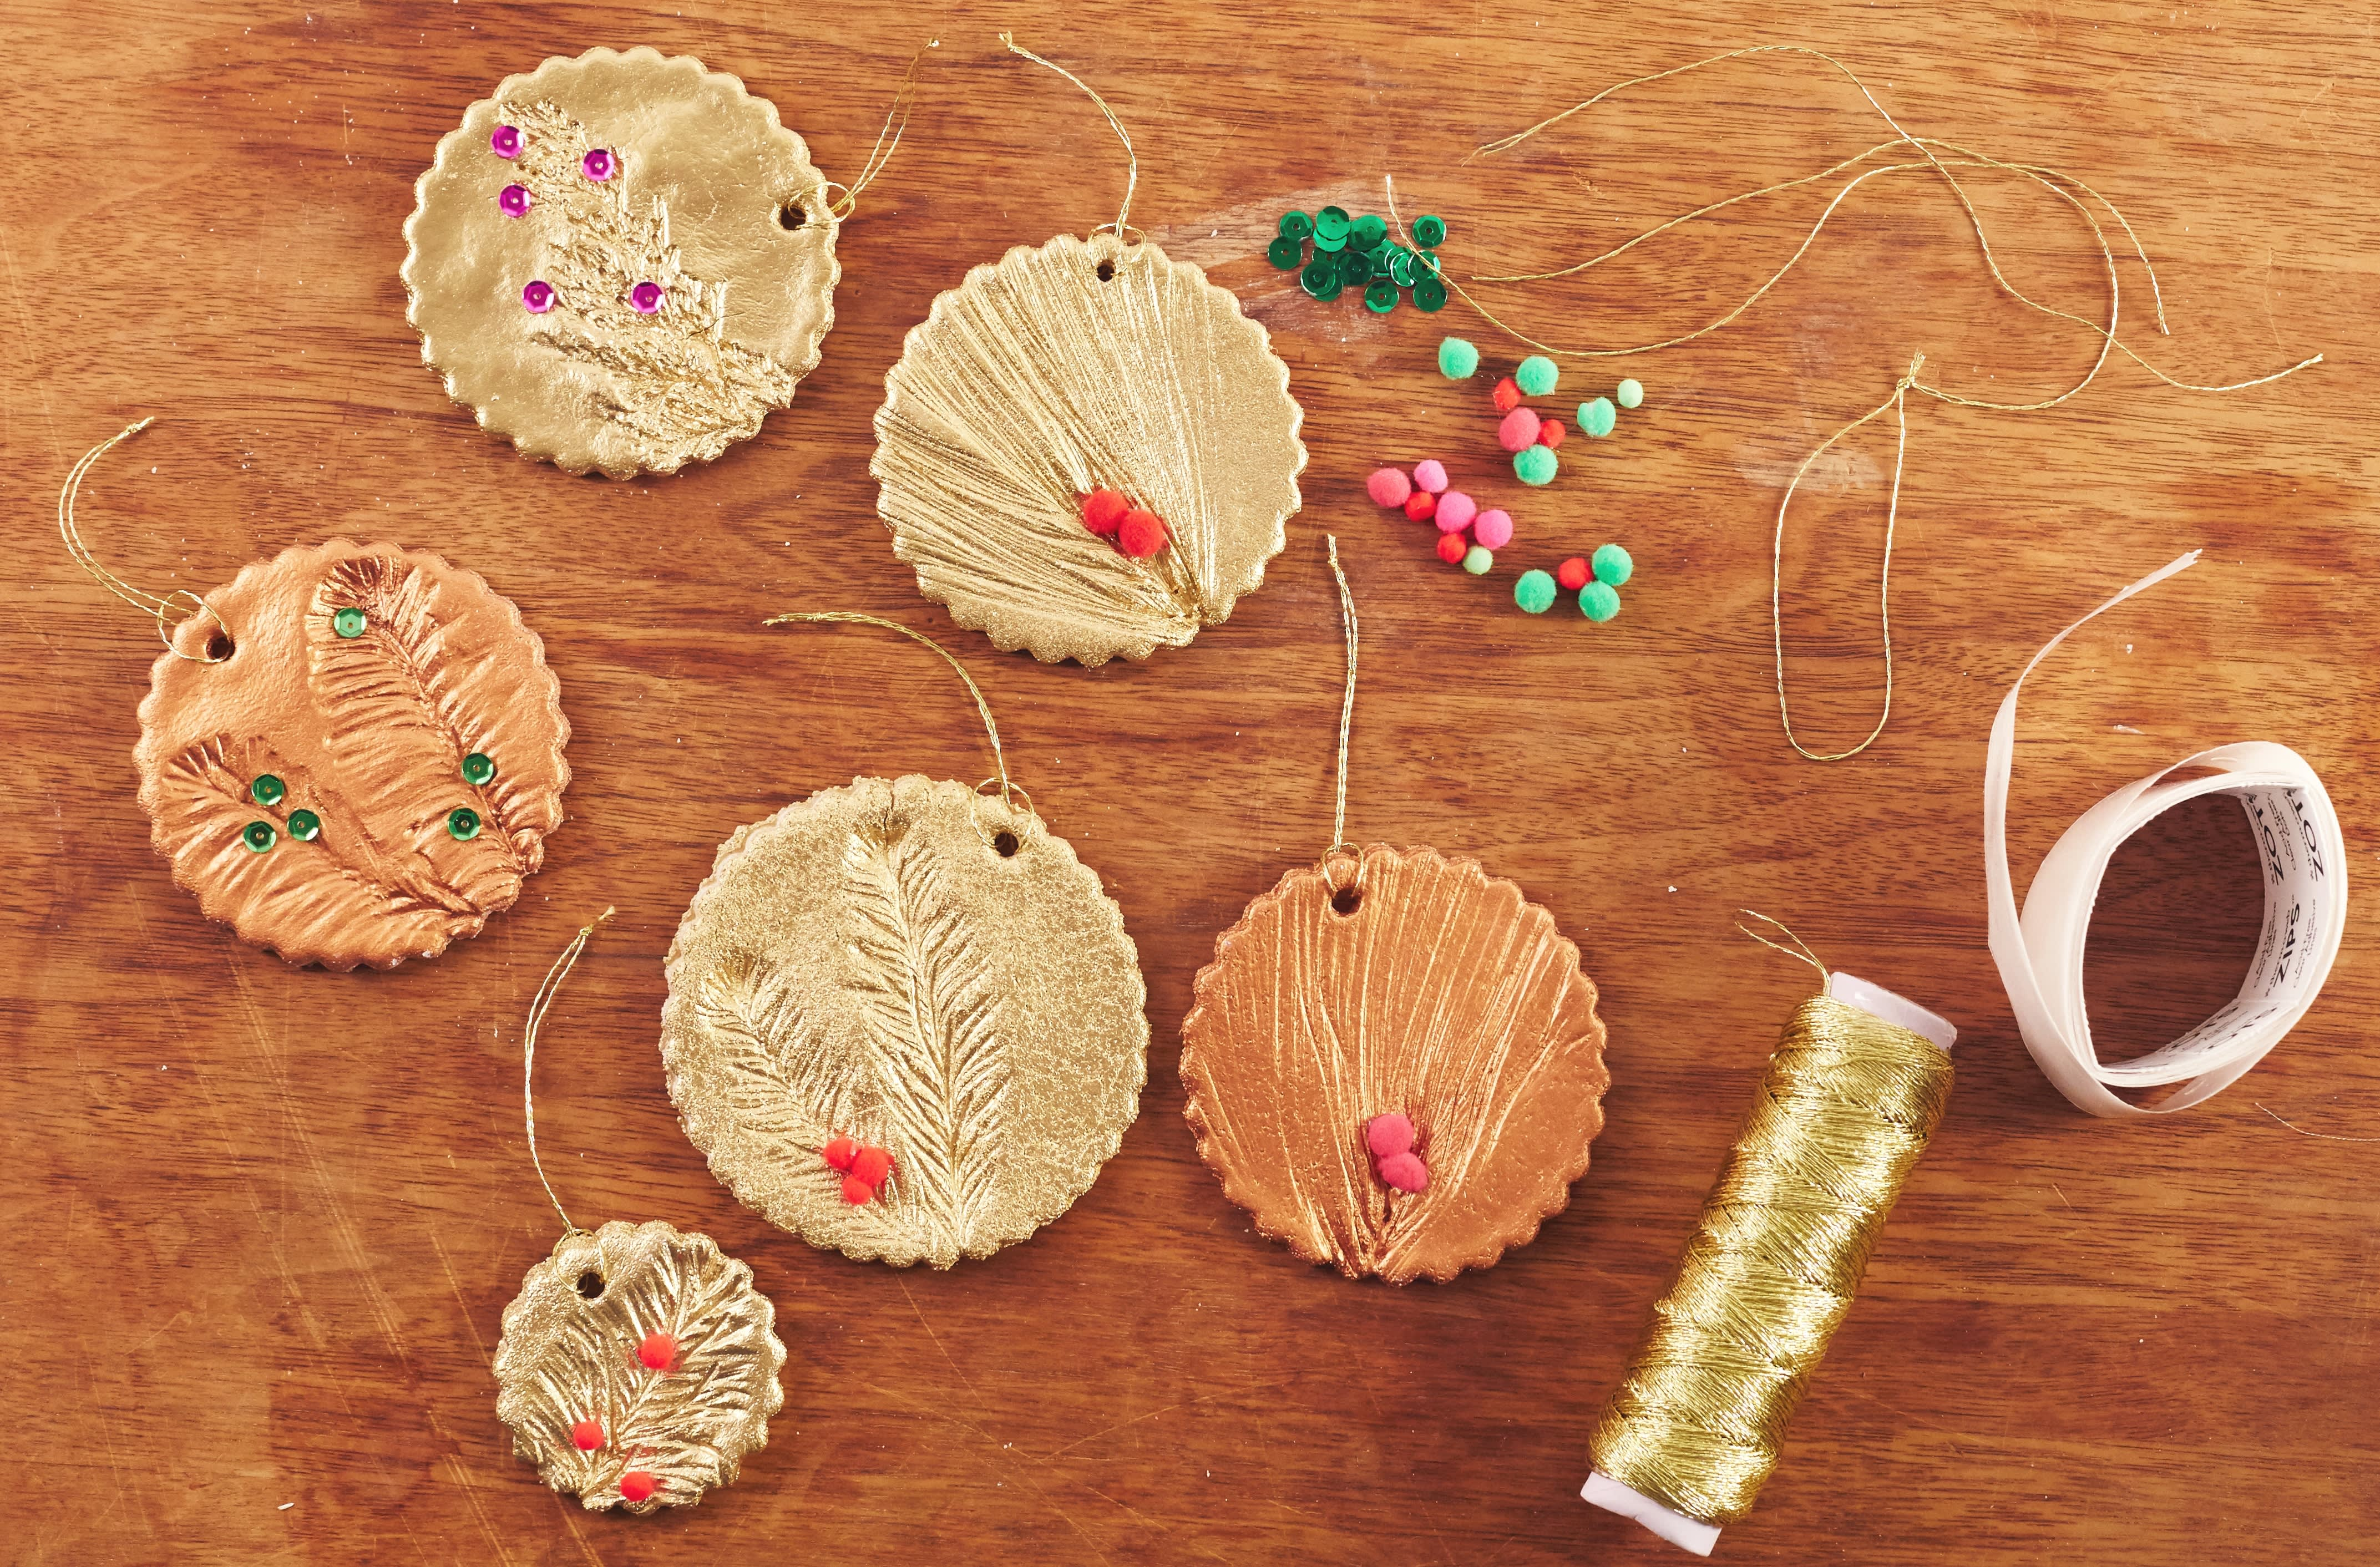 How To Make Glam Salt Dough Ornaments for Christmas: gallery image 10